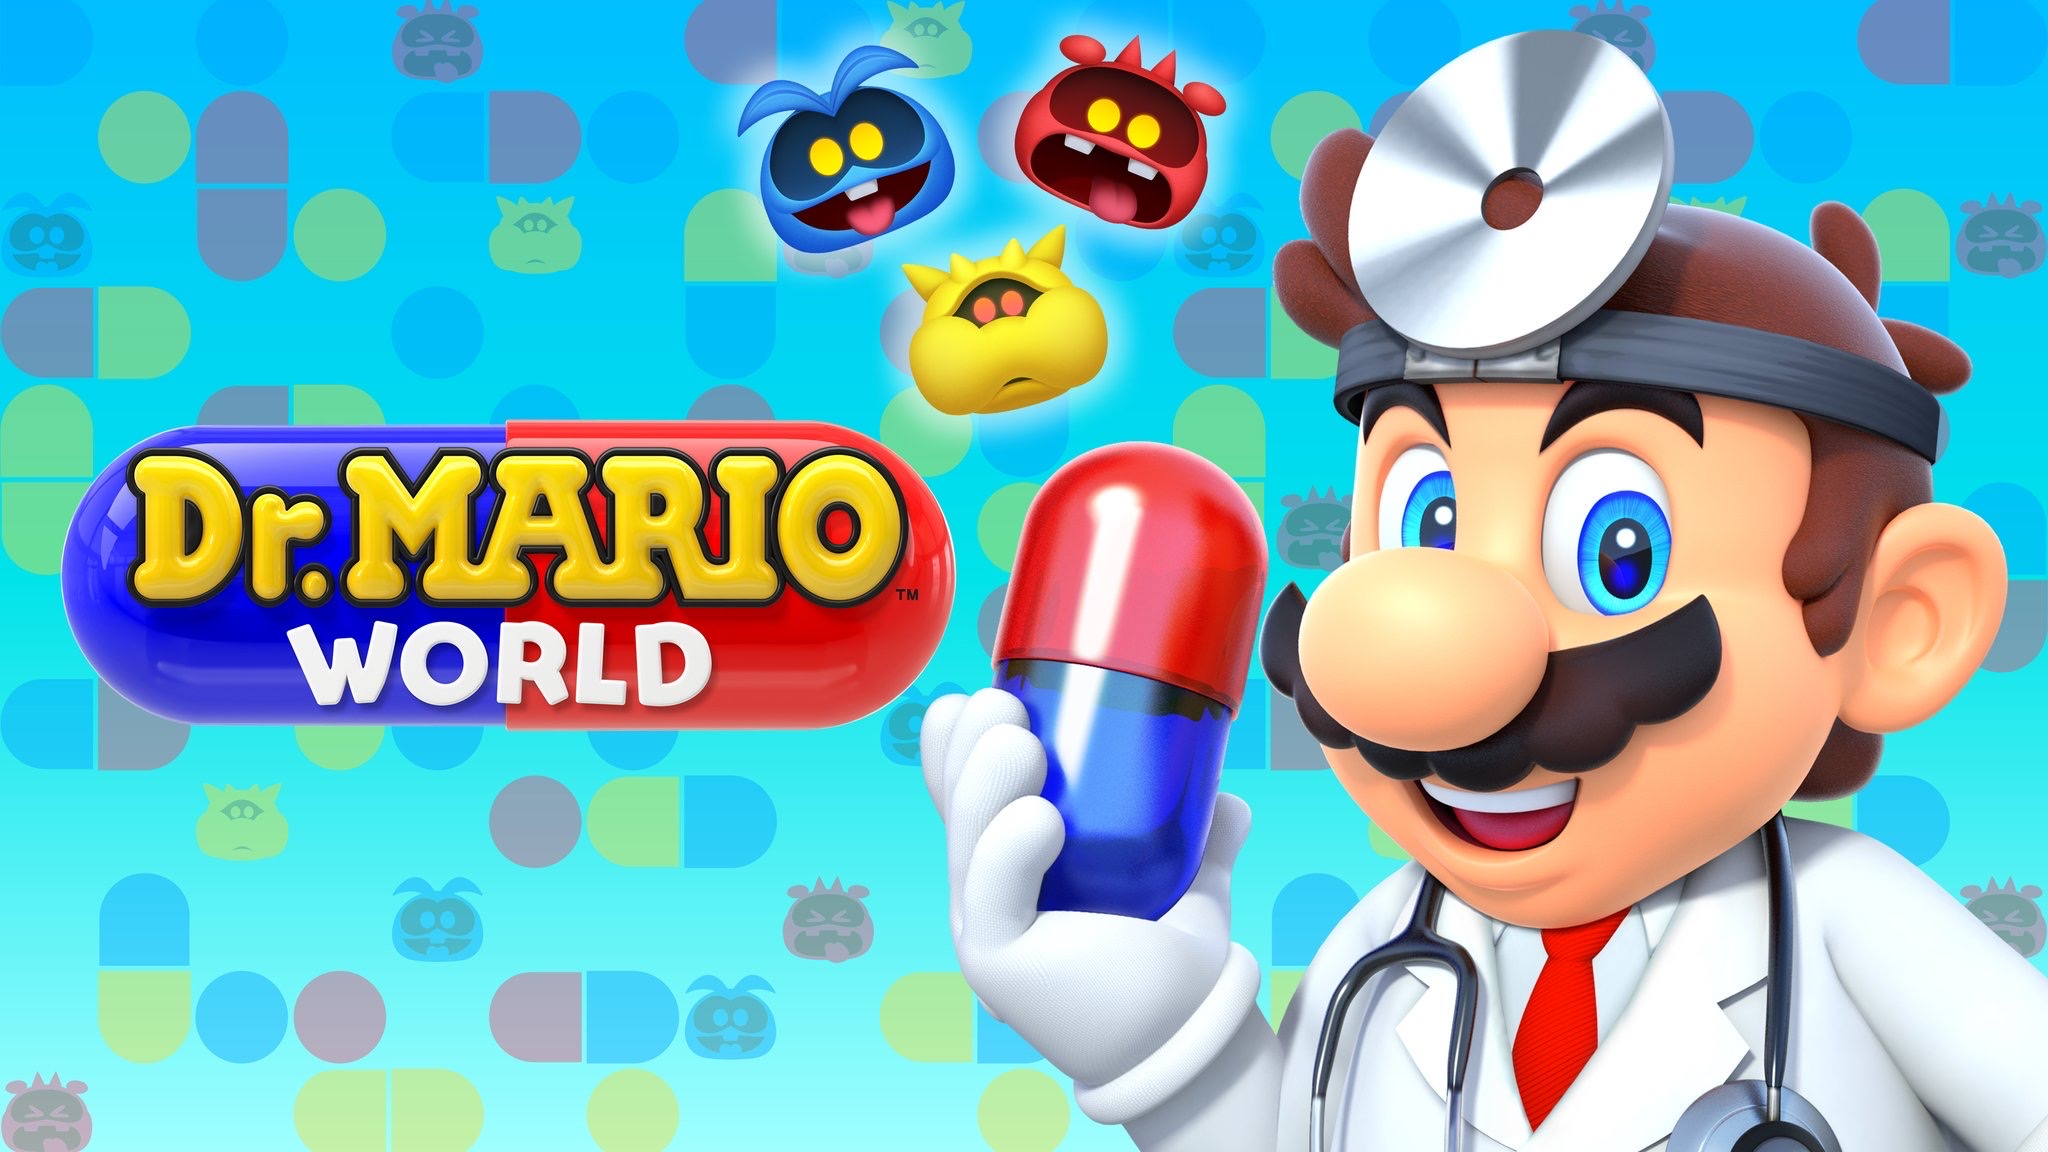 Dr. Mario World Out Now on iOS and Android Devices